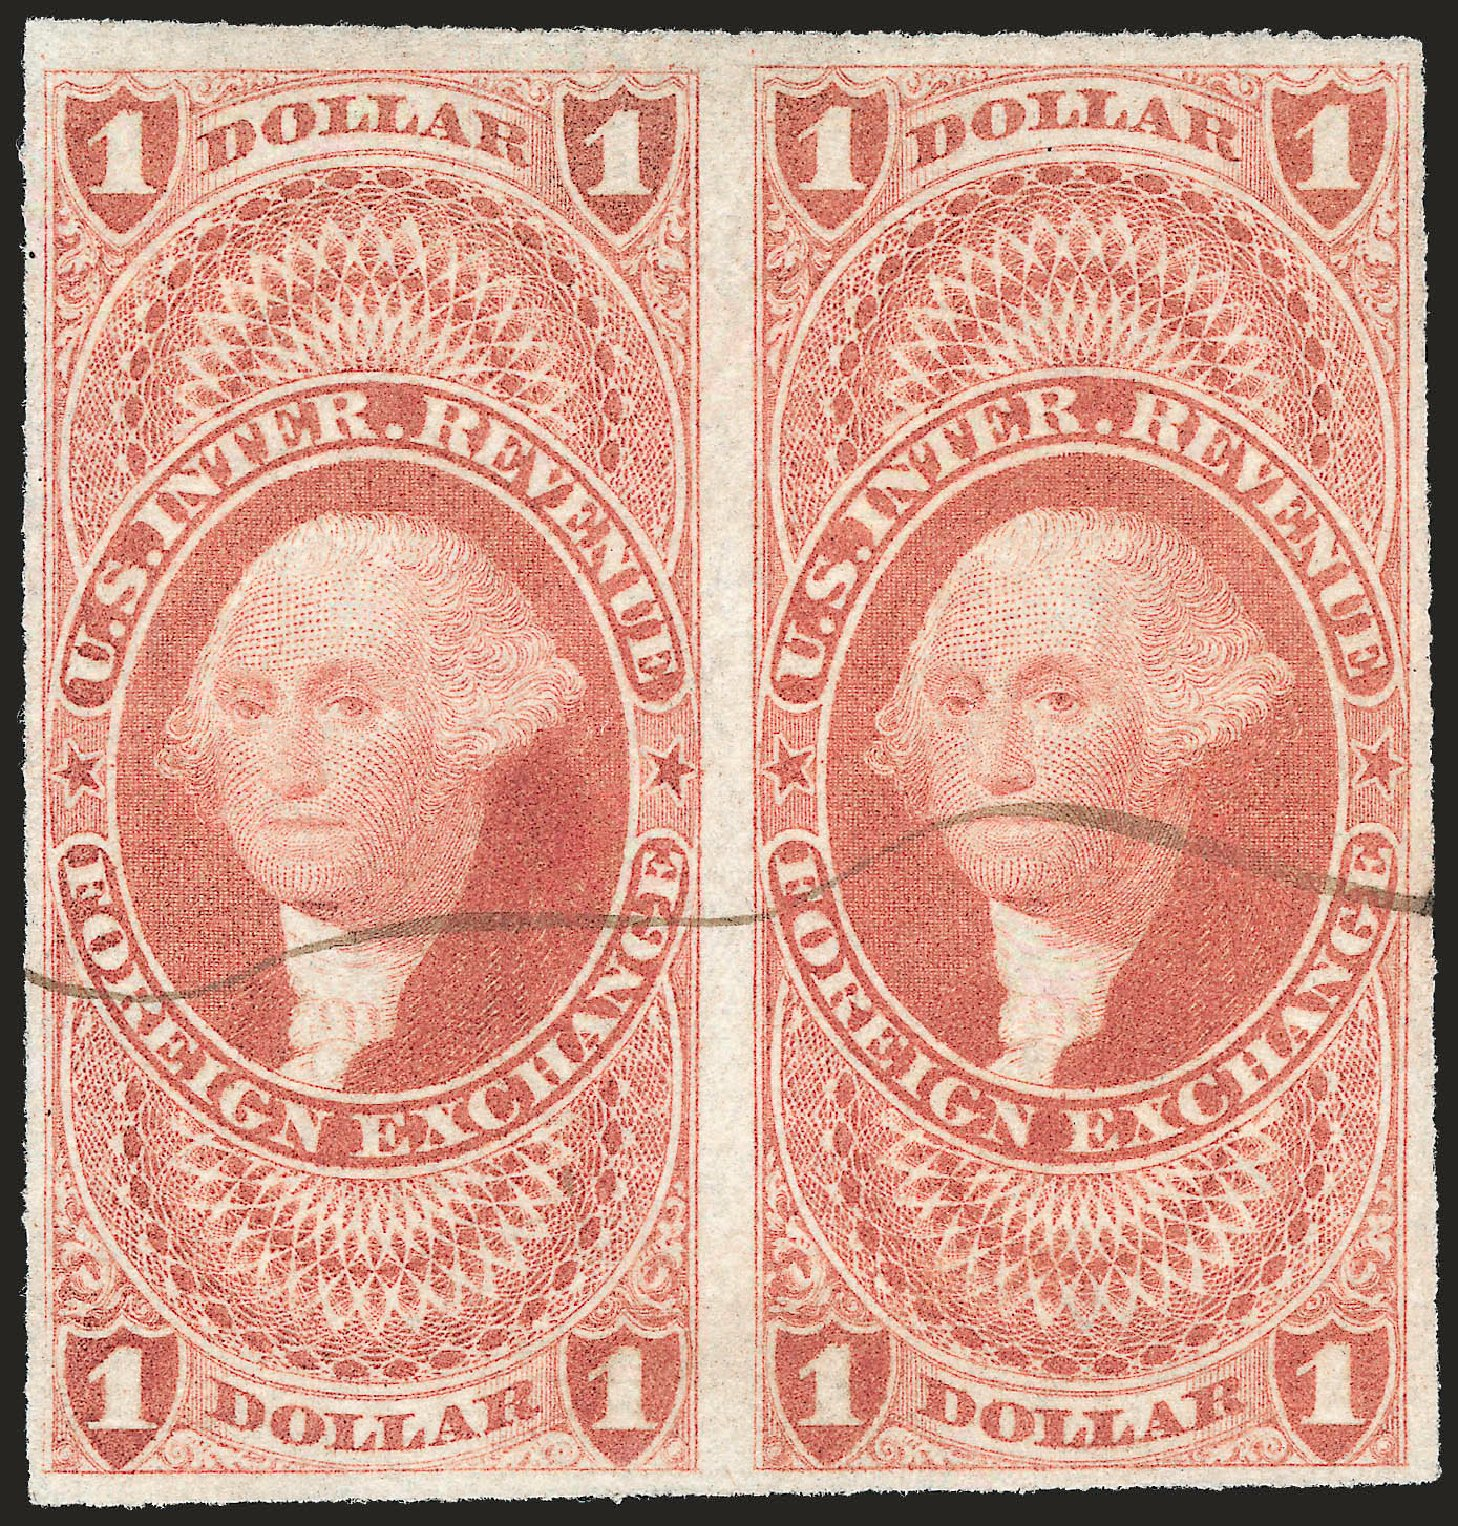 US Stamp Price Scott Catalogue R68: 1862 US$1.00 Revenue Foreign Exchange. Robert Siegel Auction Galleries, Dec 2008, Sale 967, Lot 5233